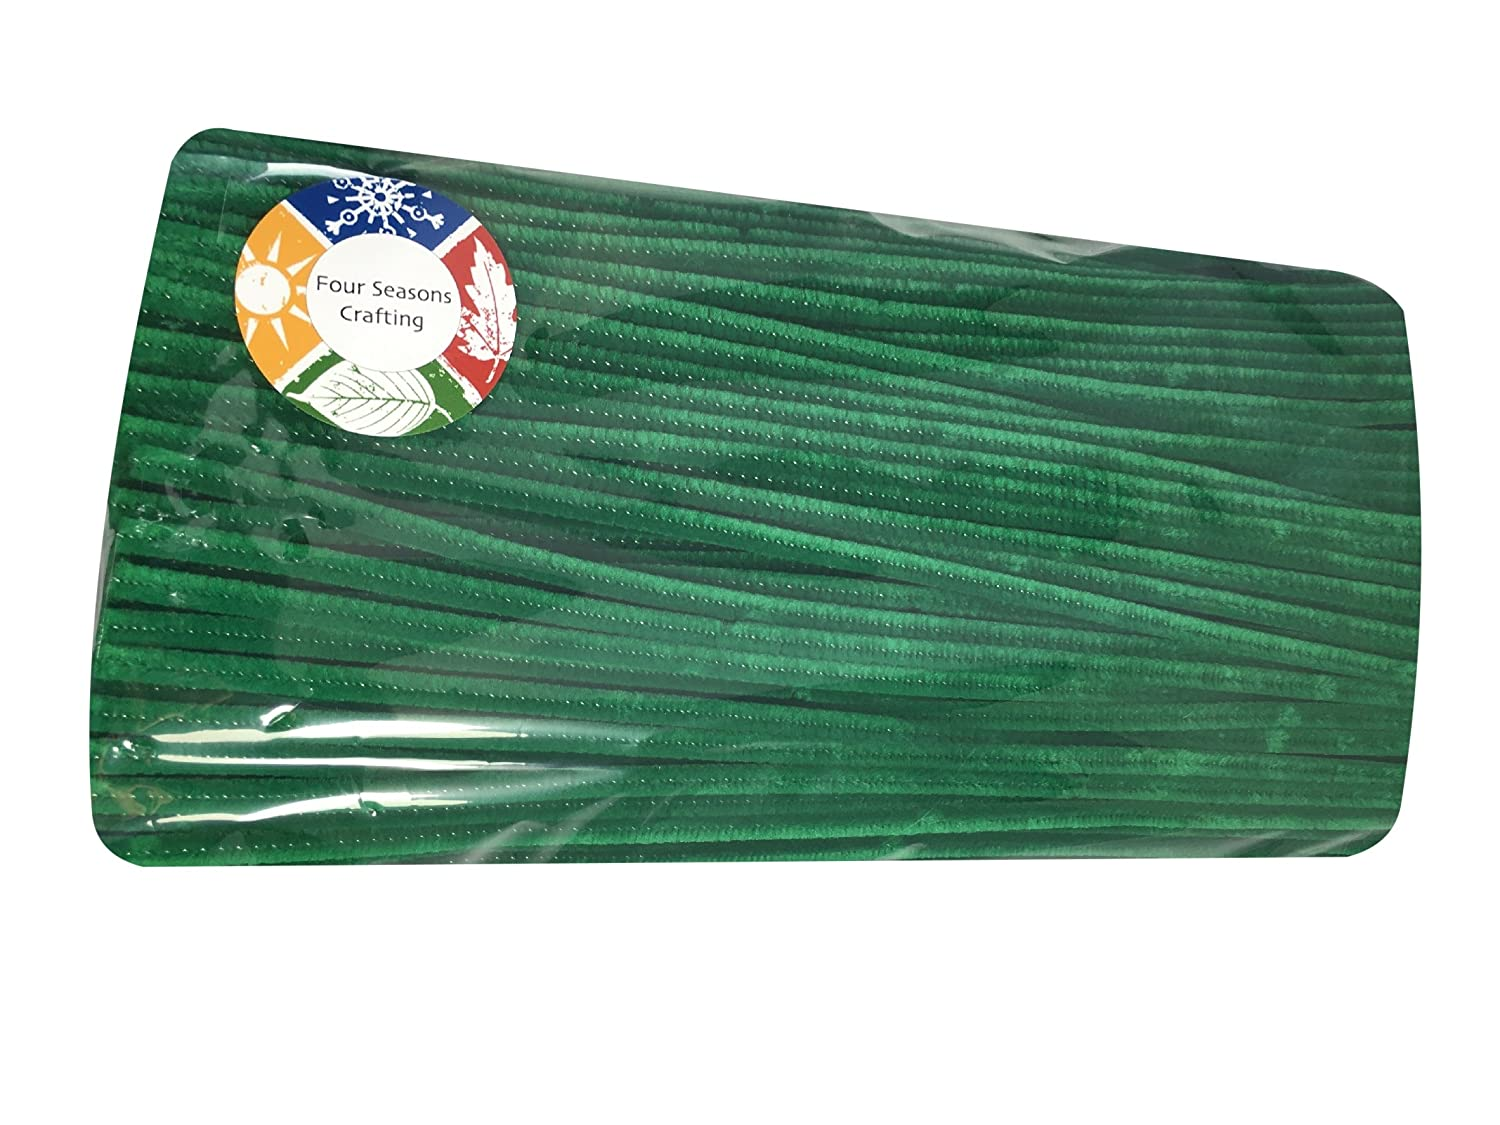 Four Seasons Crafting Chenille Stems Super Pack Pipe Cleaners 350 Piece Green